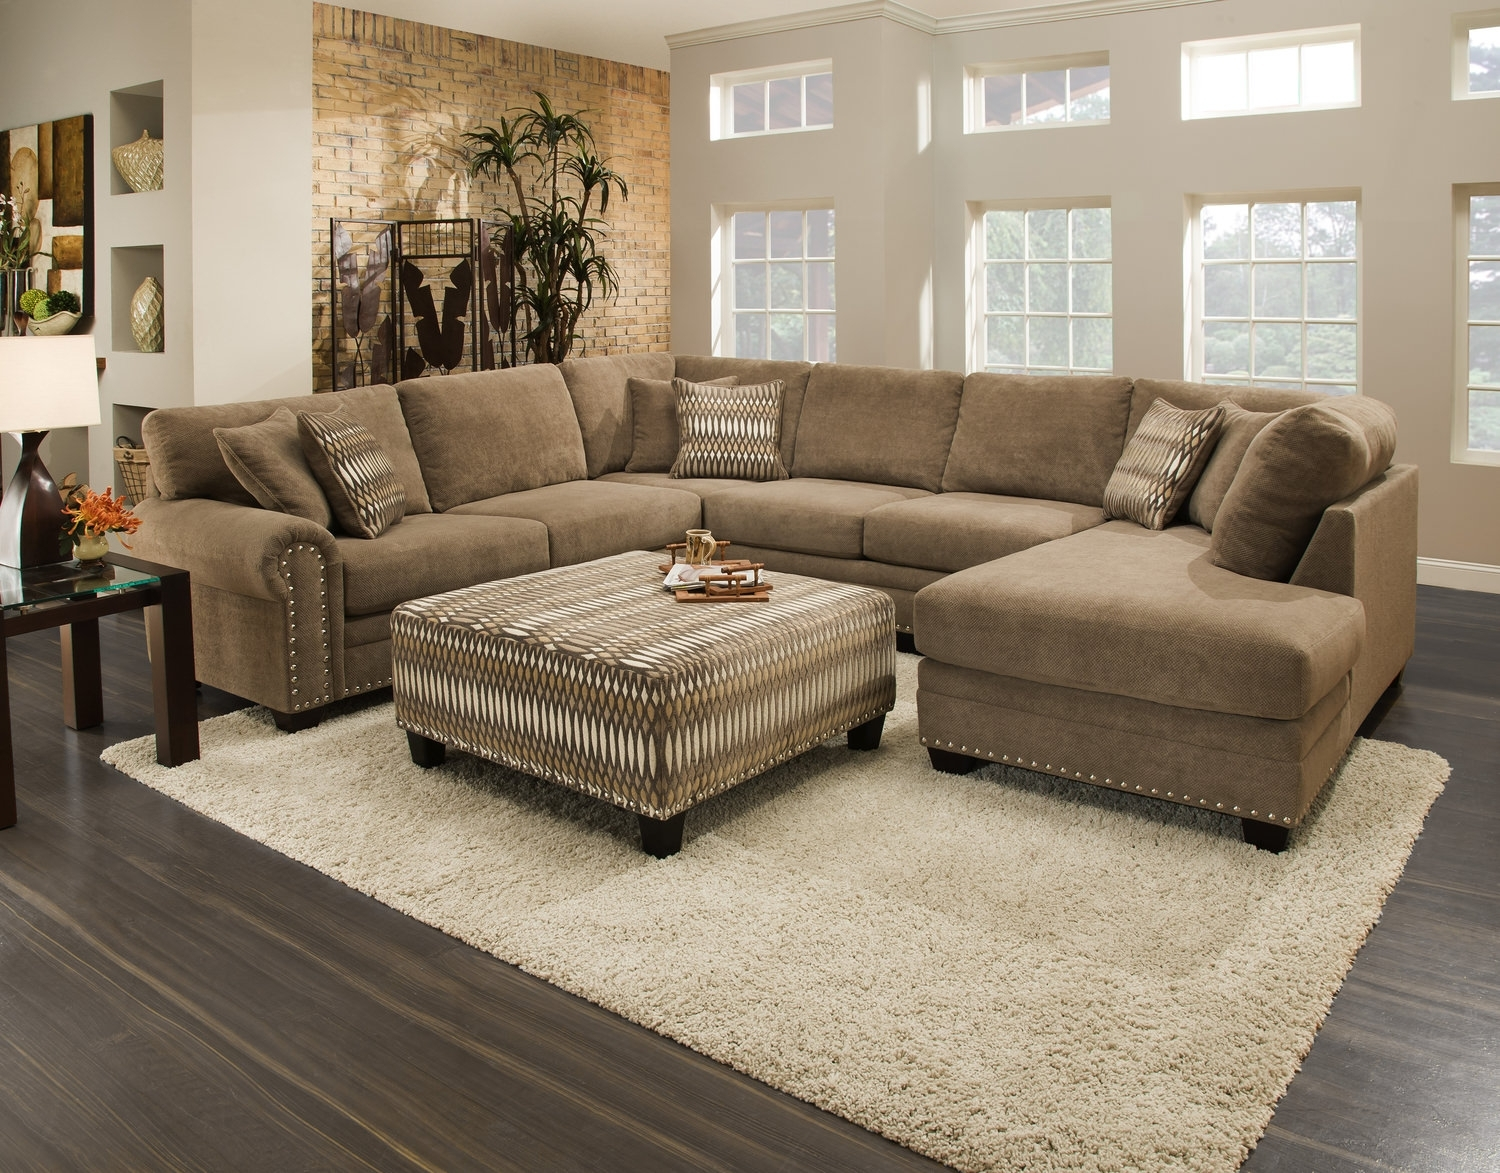 Sectional Sofas Mn - Home And Textiles throughout Mn Sectional Sofas (Image 9 of 10)